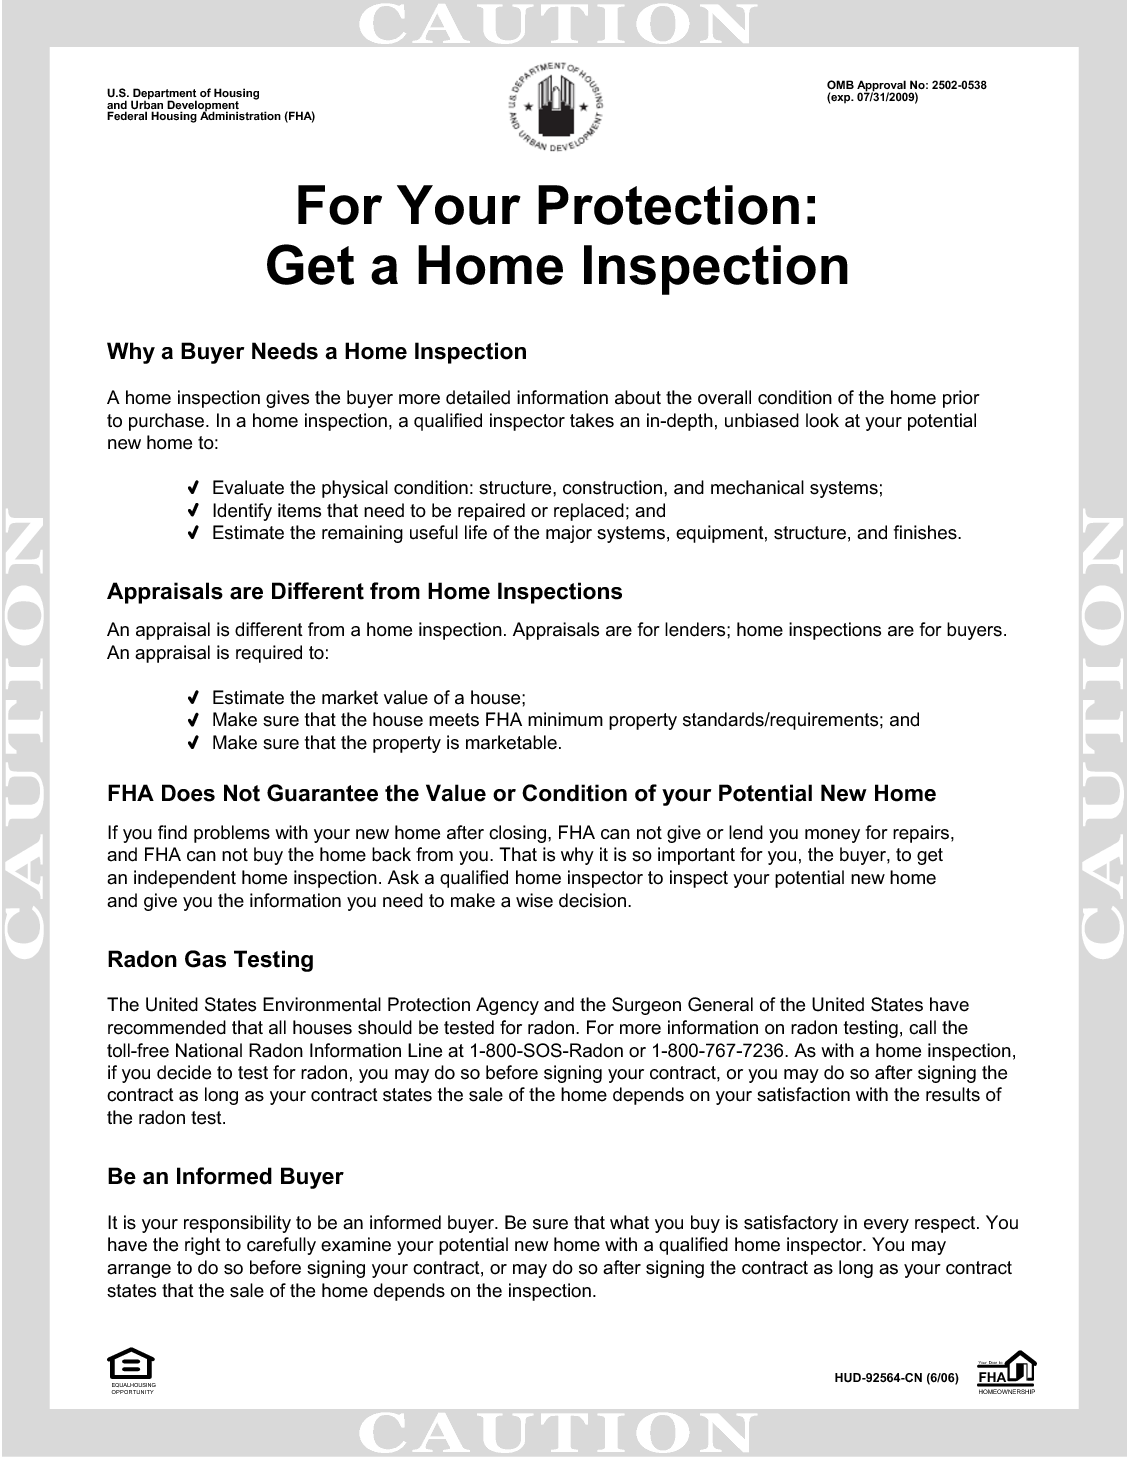 for your protection get a home inspection For Your Protection - Get a #HomeInspection | Home Buying ...